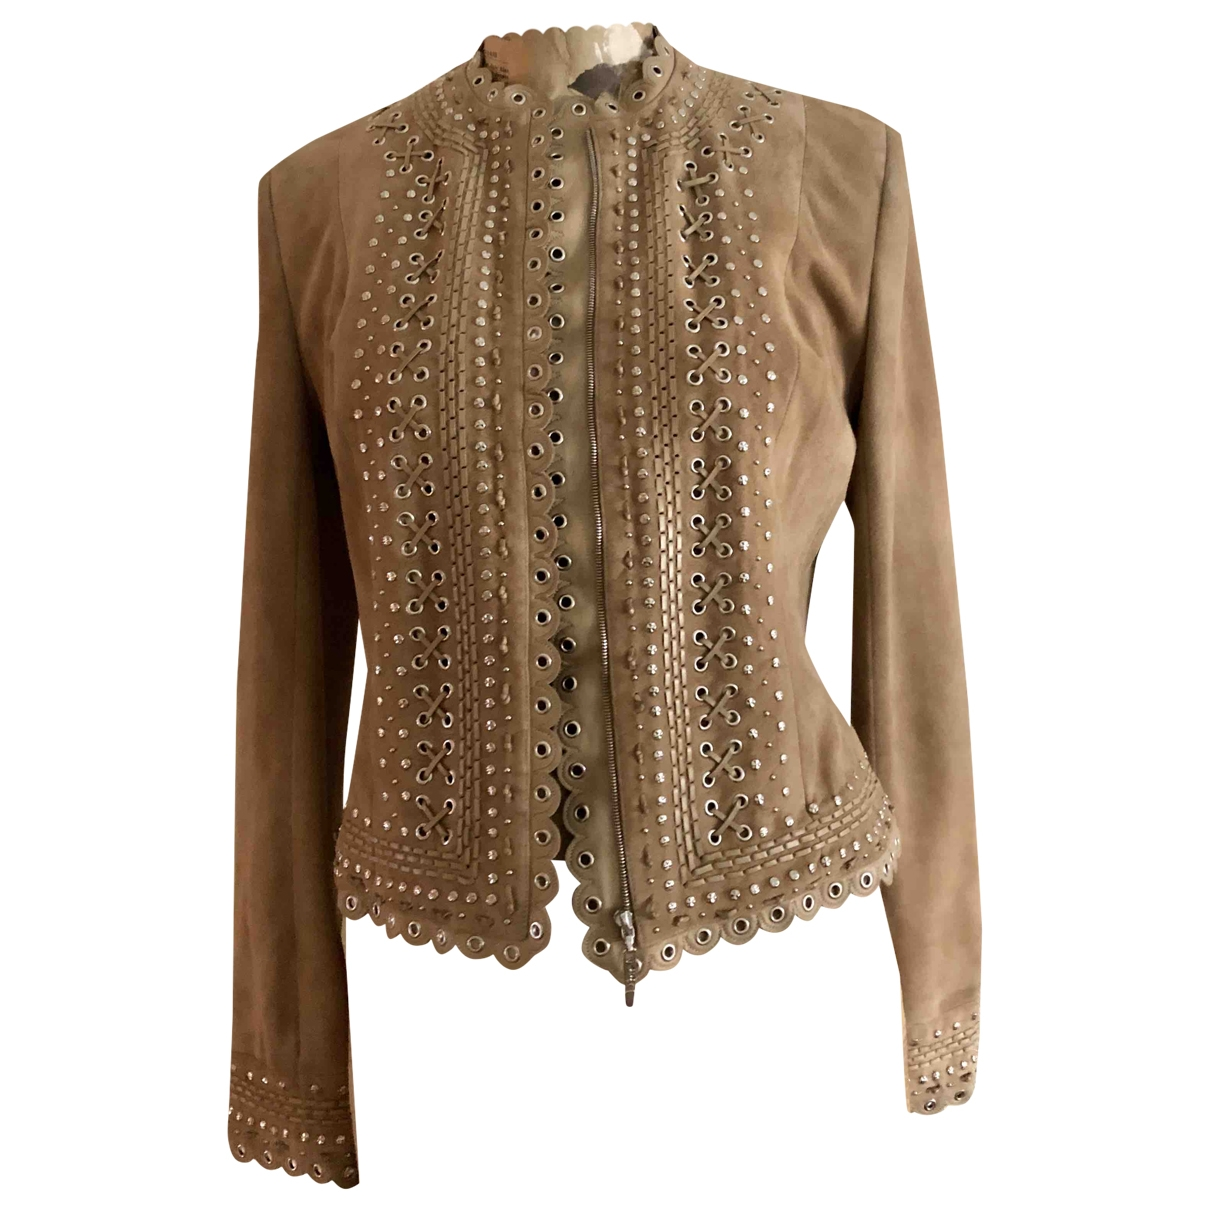 Dior \N Beige Suede jacket for Women 42 IT